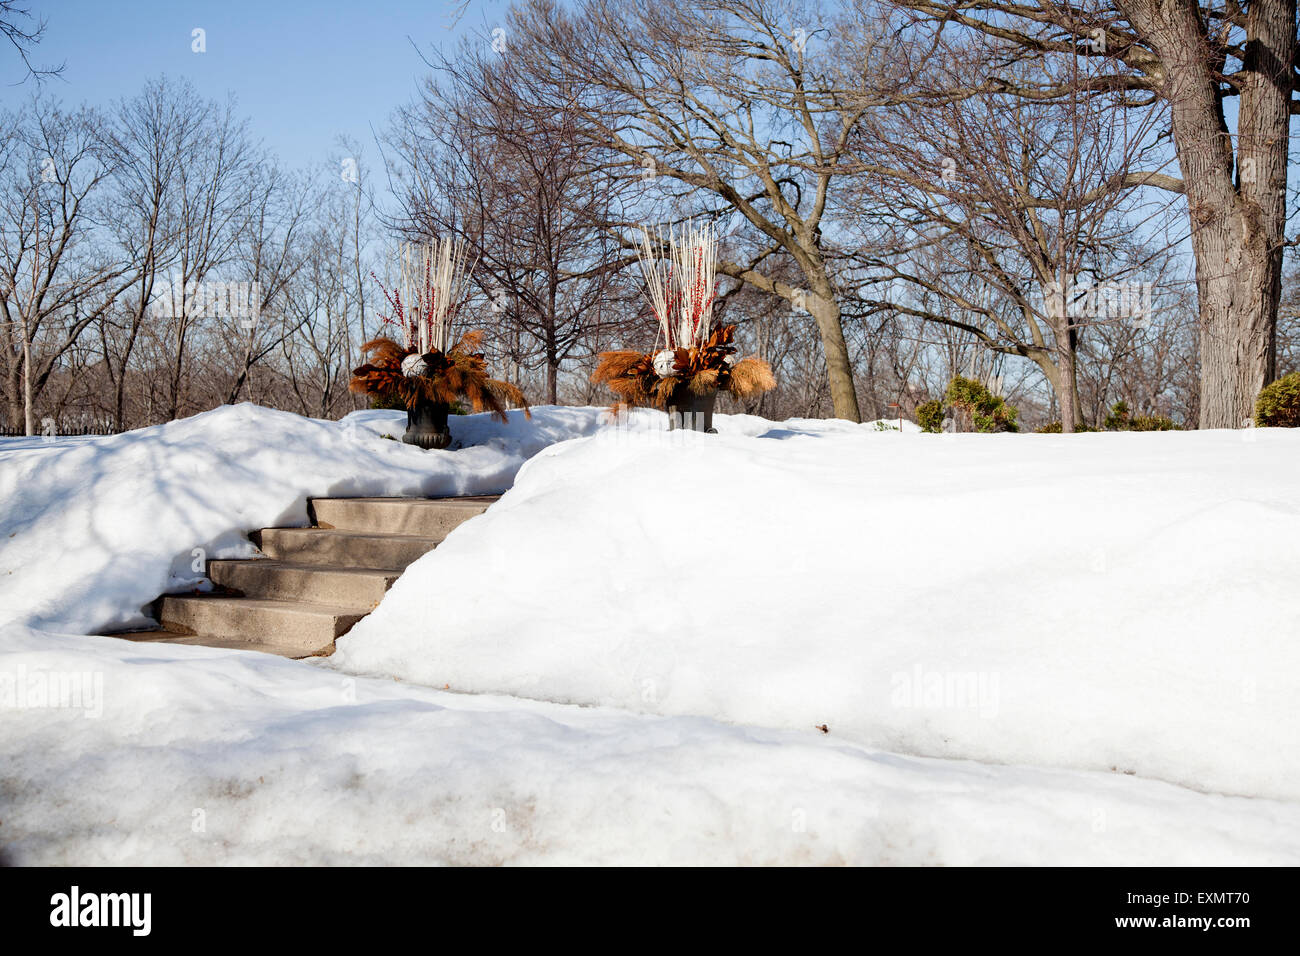 Two pots decorating a winter walkway filled with evergreen bows berry branches and leaves. Minneapolis Minnesota - Stock Image